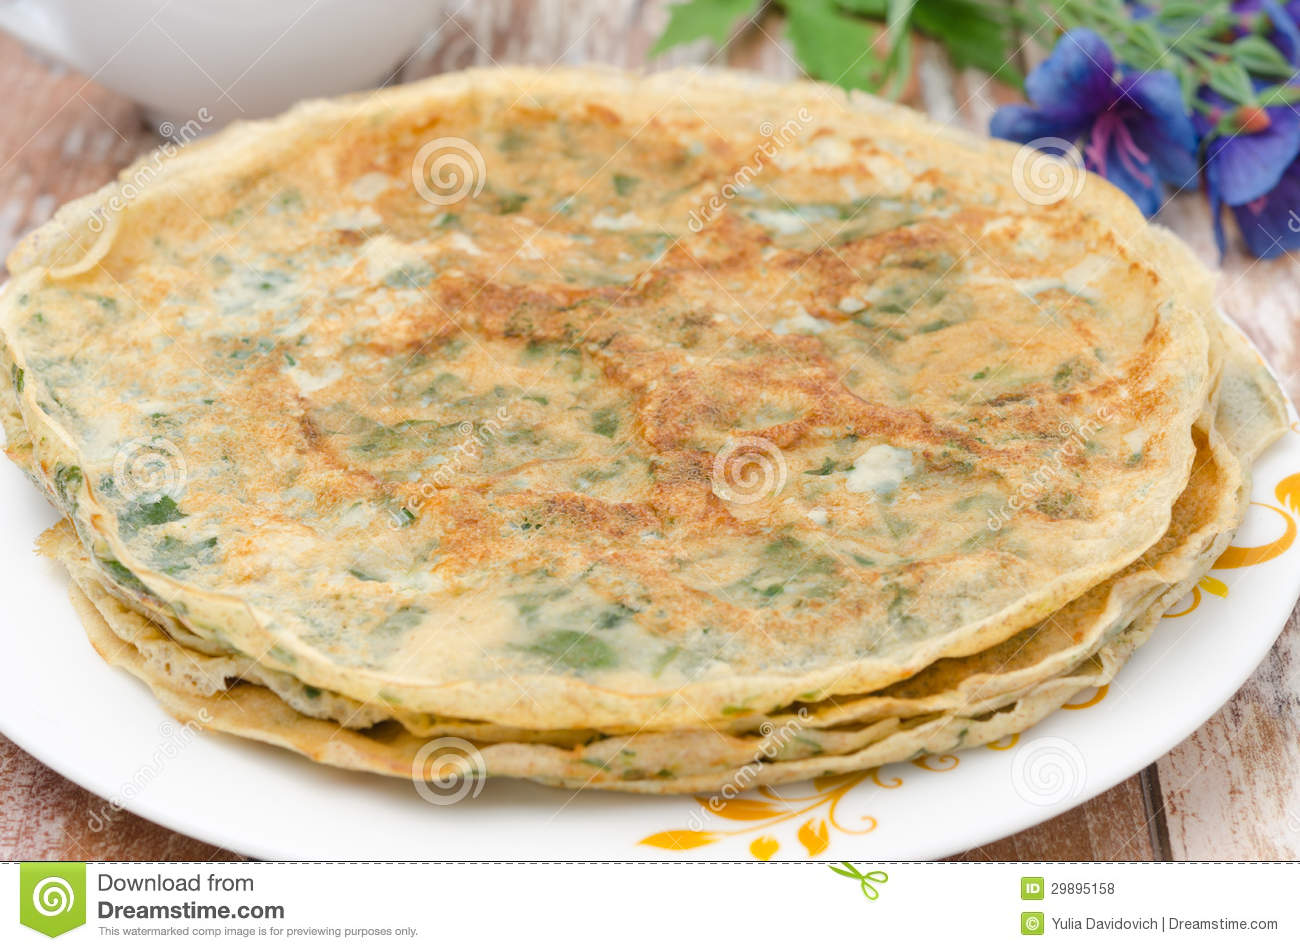 Crepes with spinach